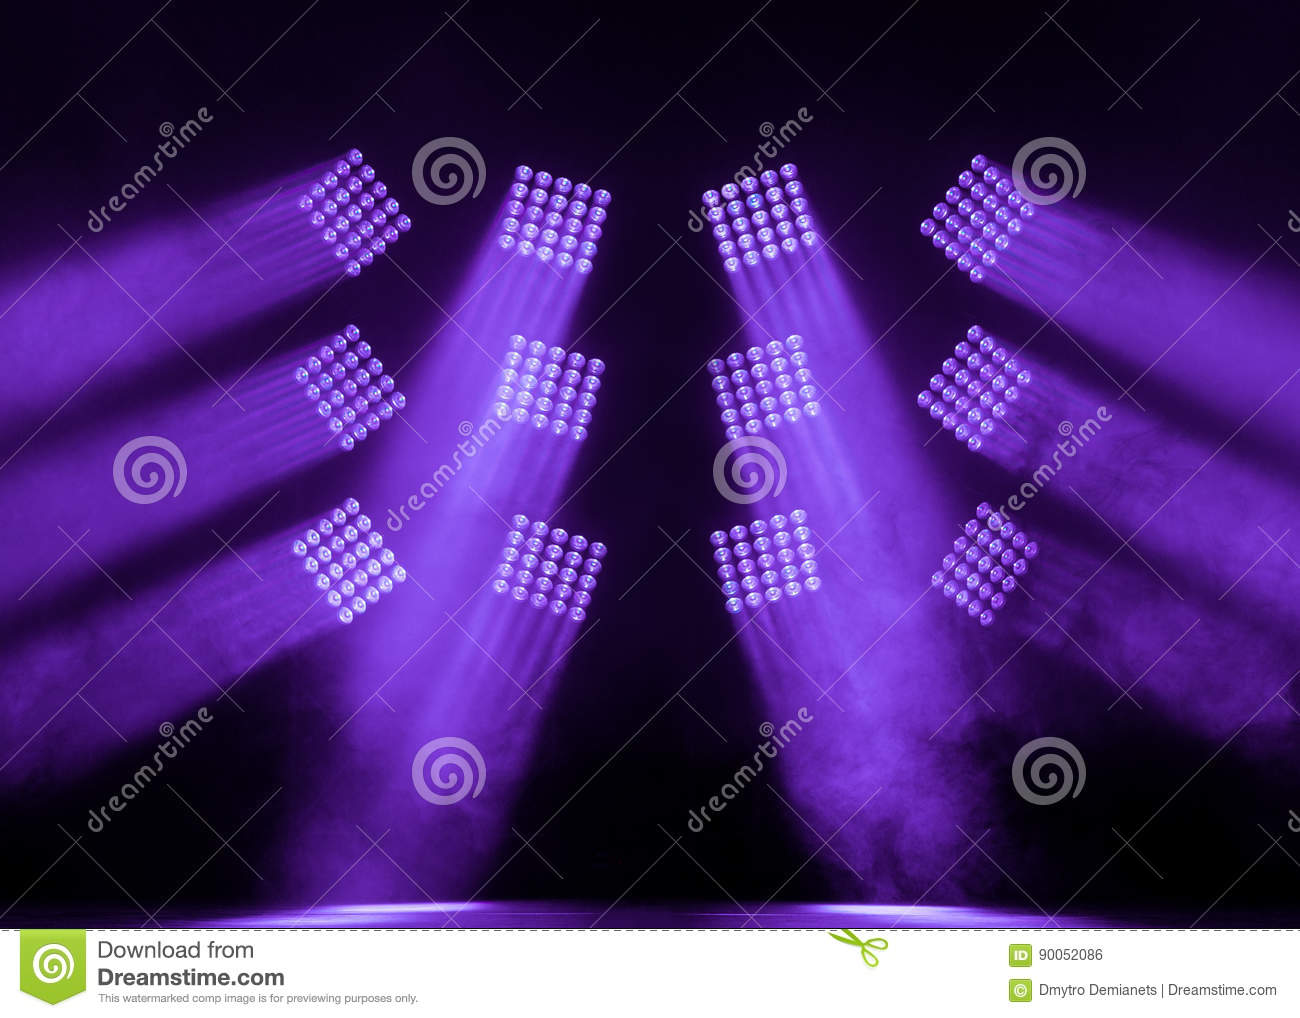 Serenity and purple square stage spotlights with a smoke on the concert